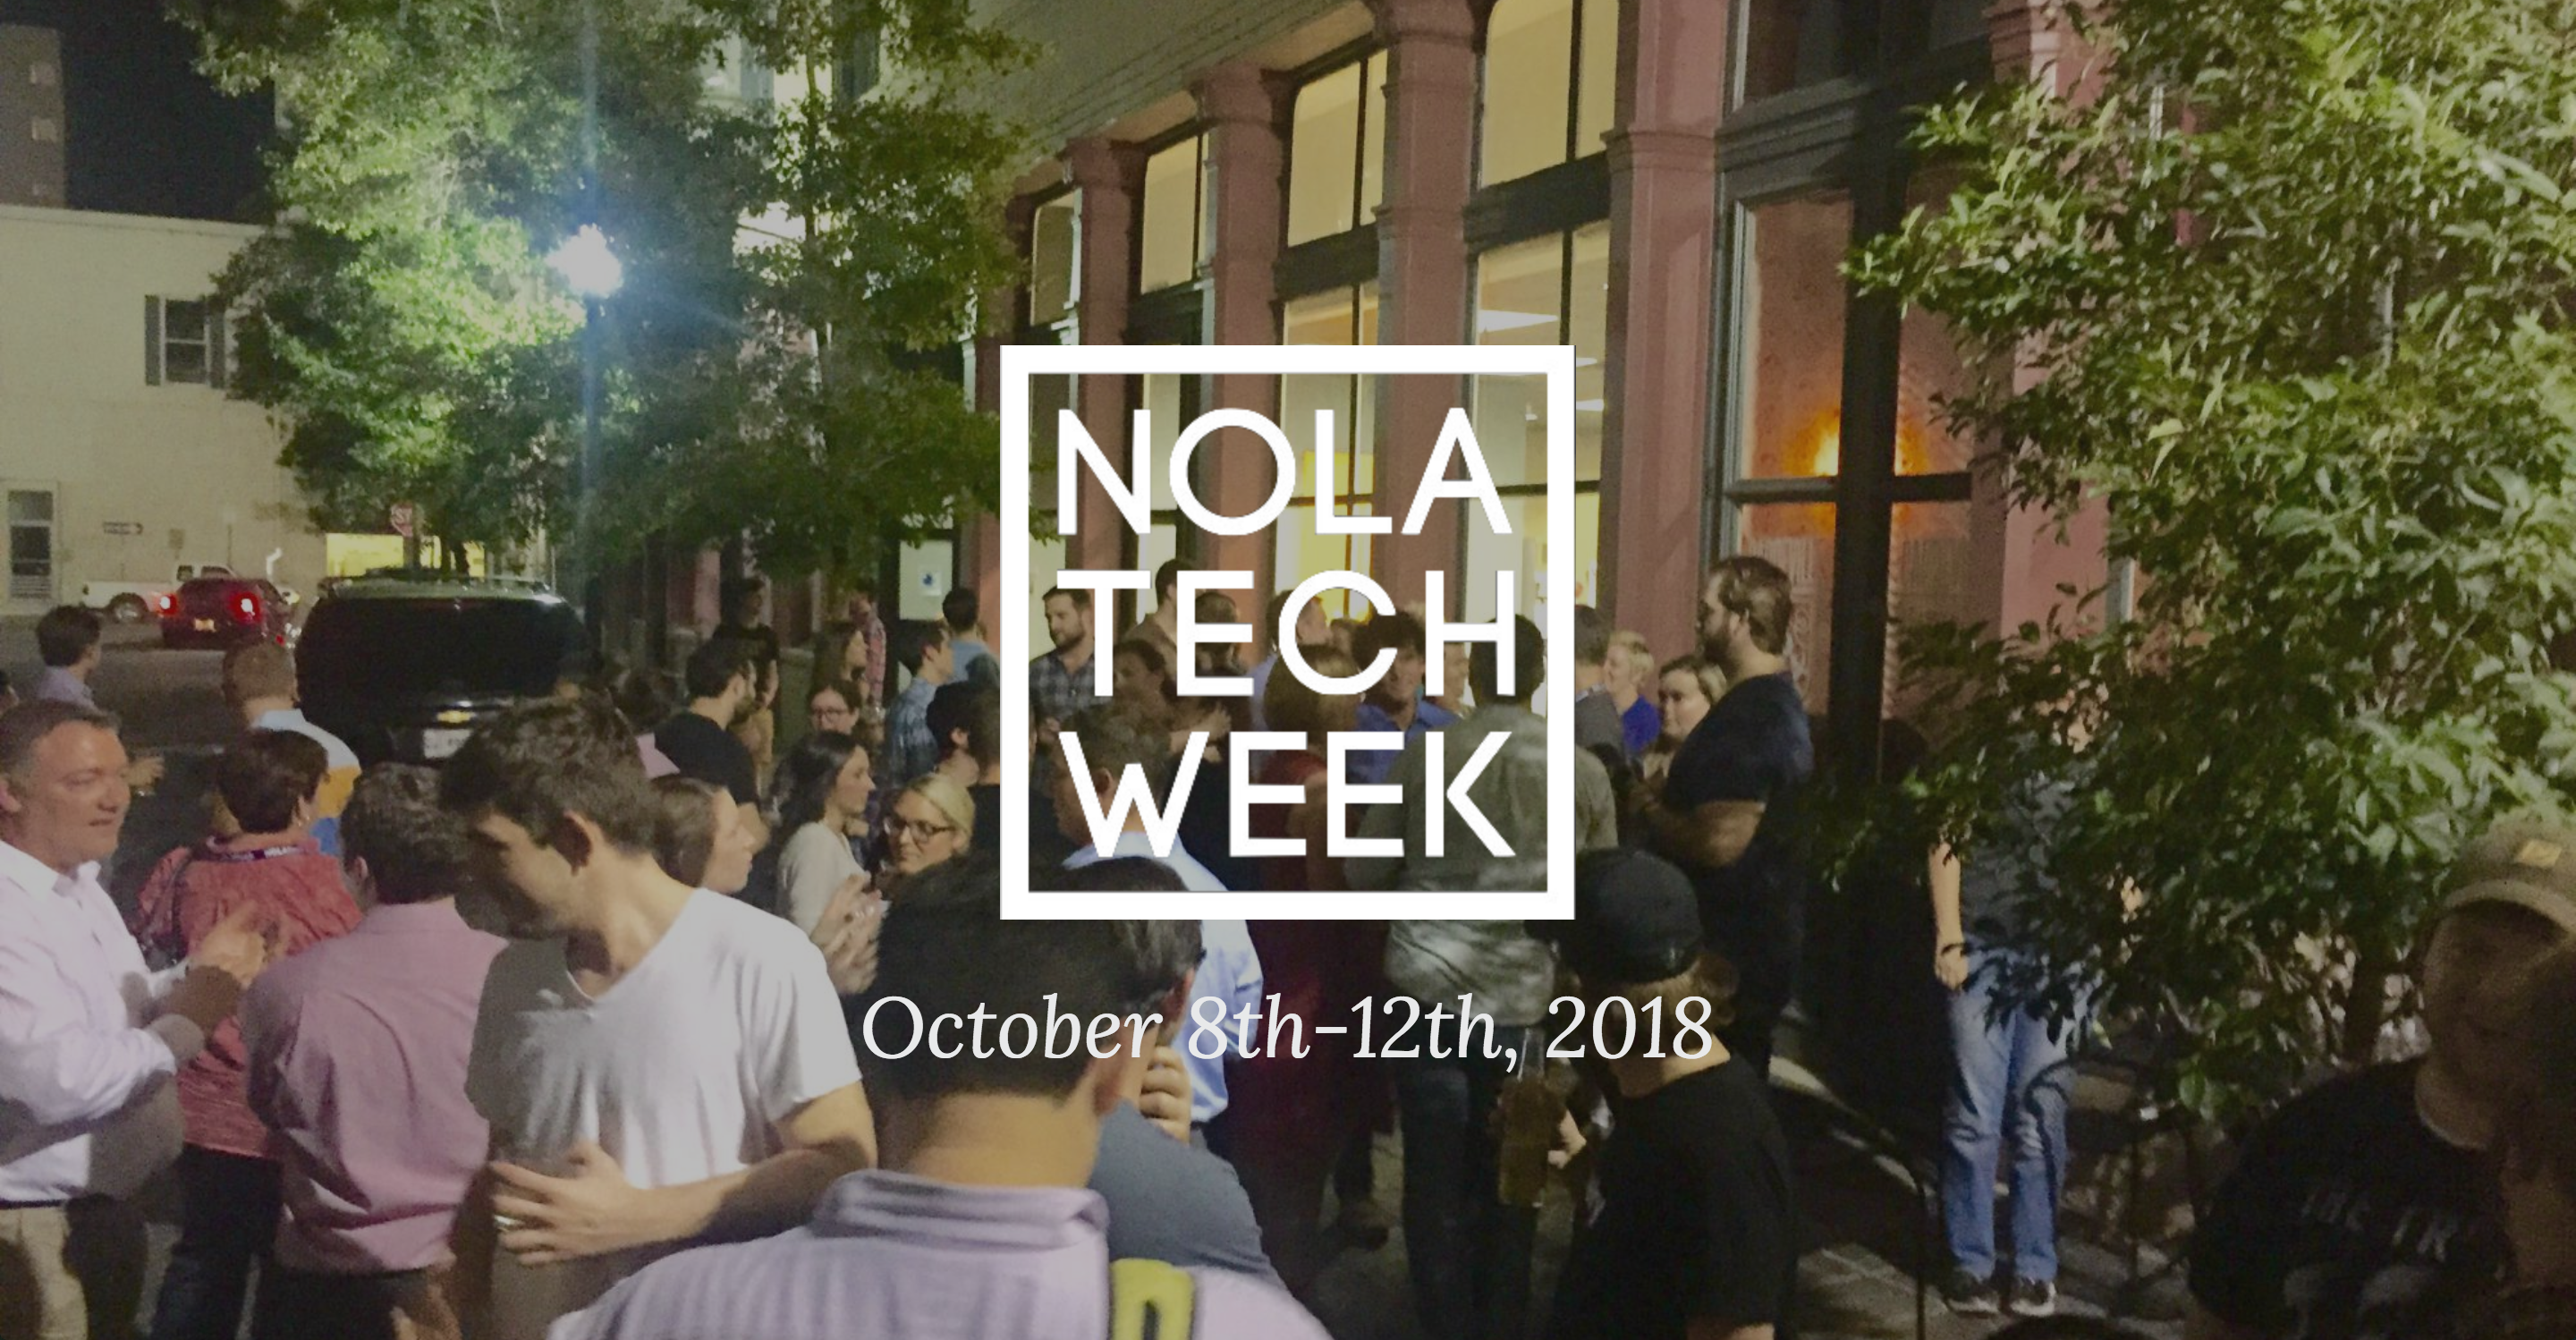 NOLA Tech Week 2018